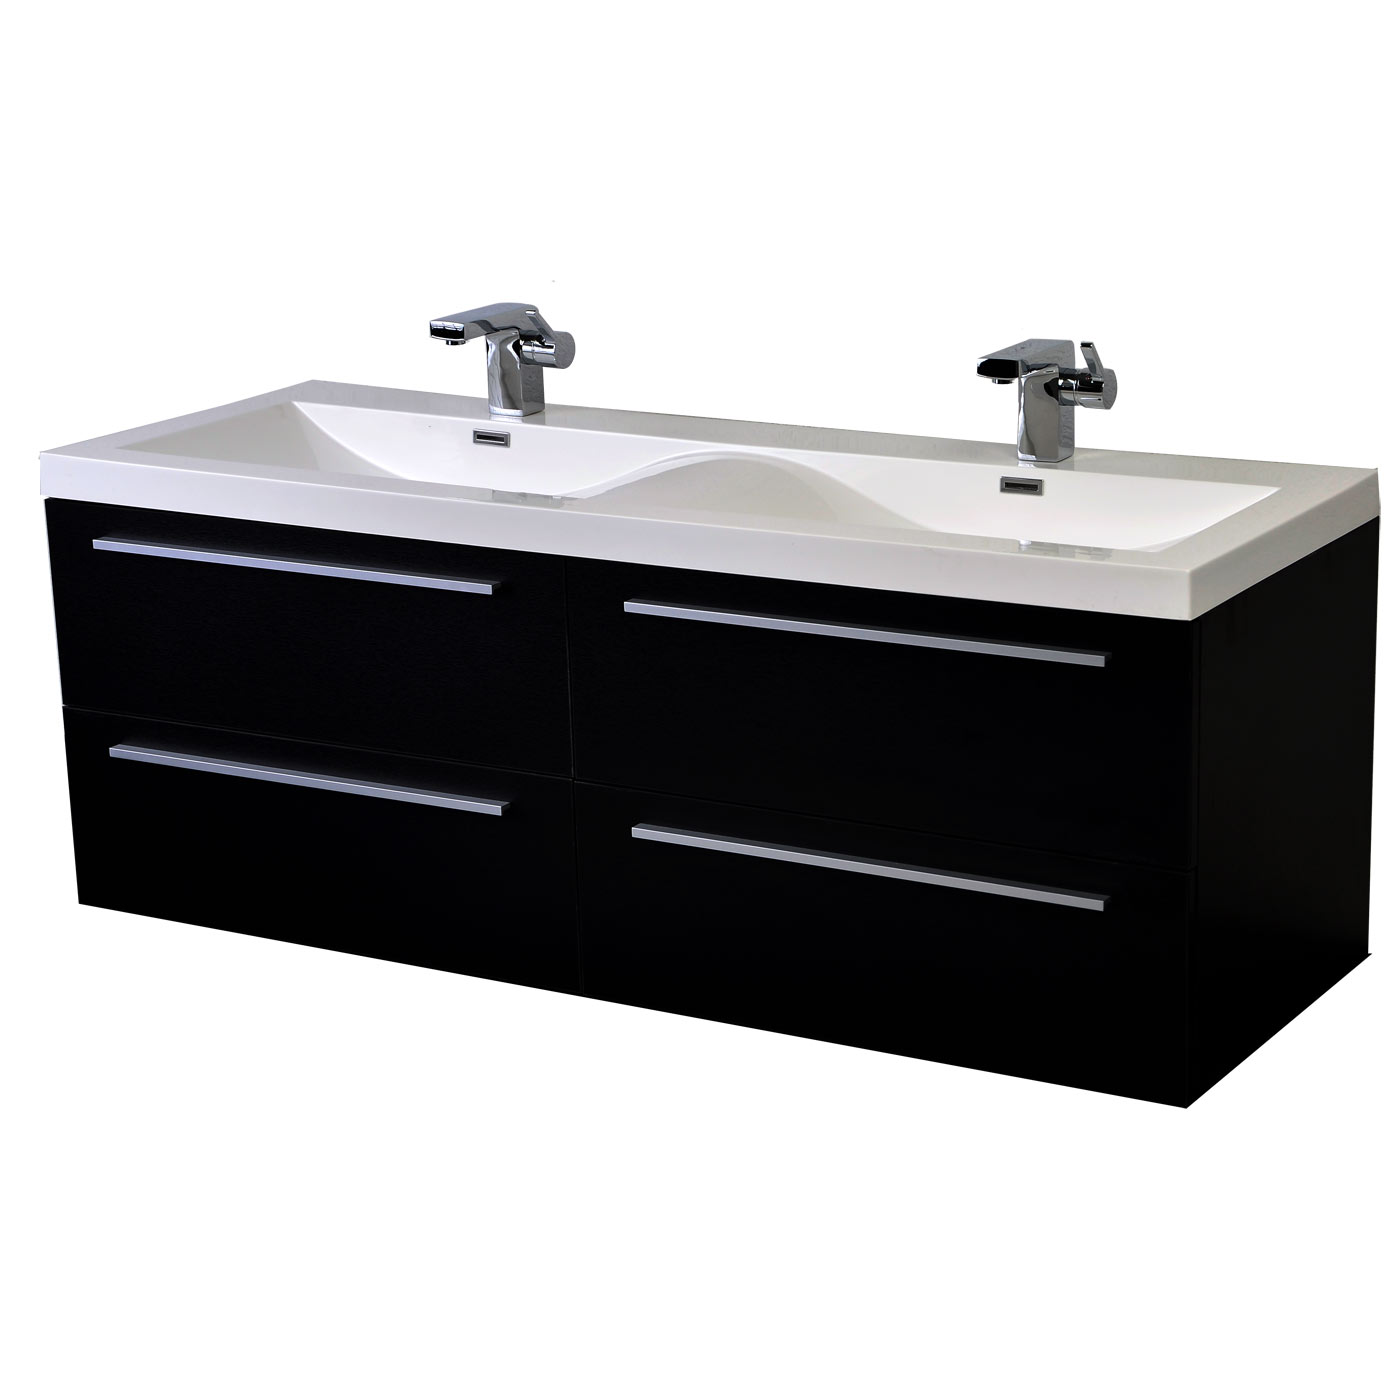 57 inch modern double sink vanity set with wavy sinks - Contemporary double sink bathroom vanity ...